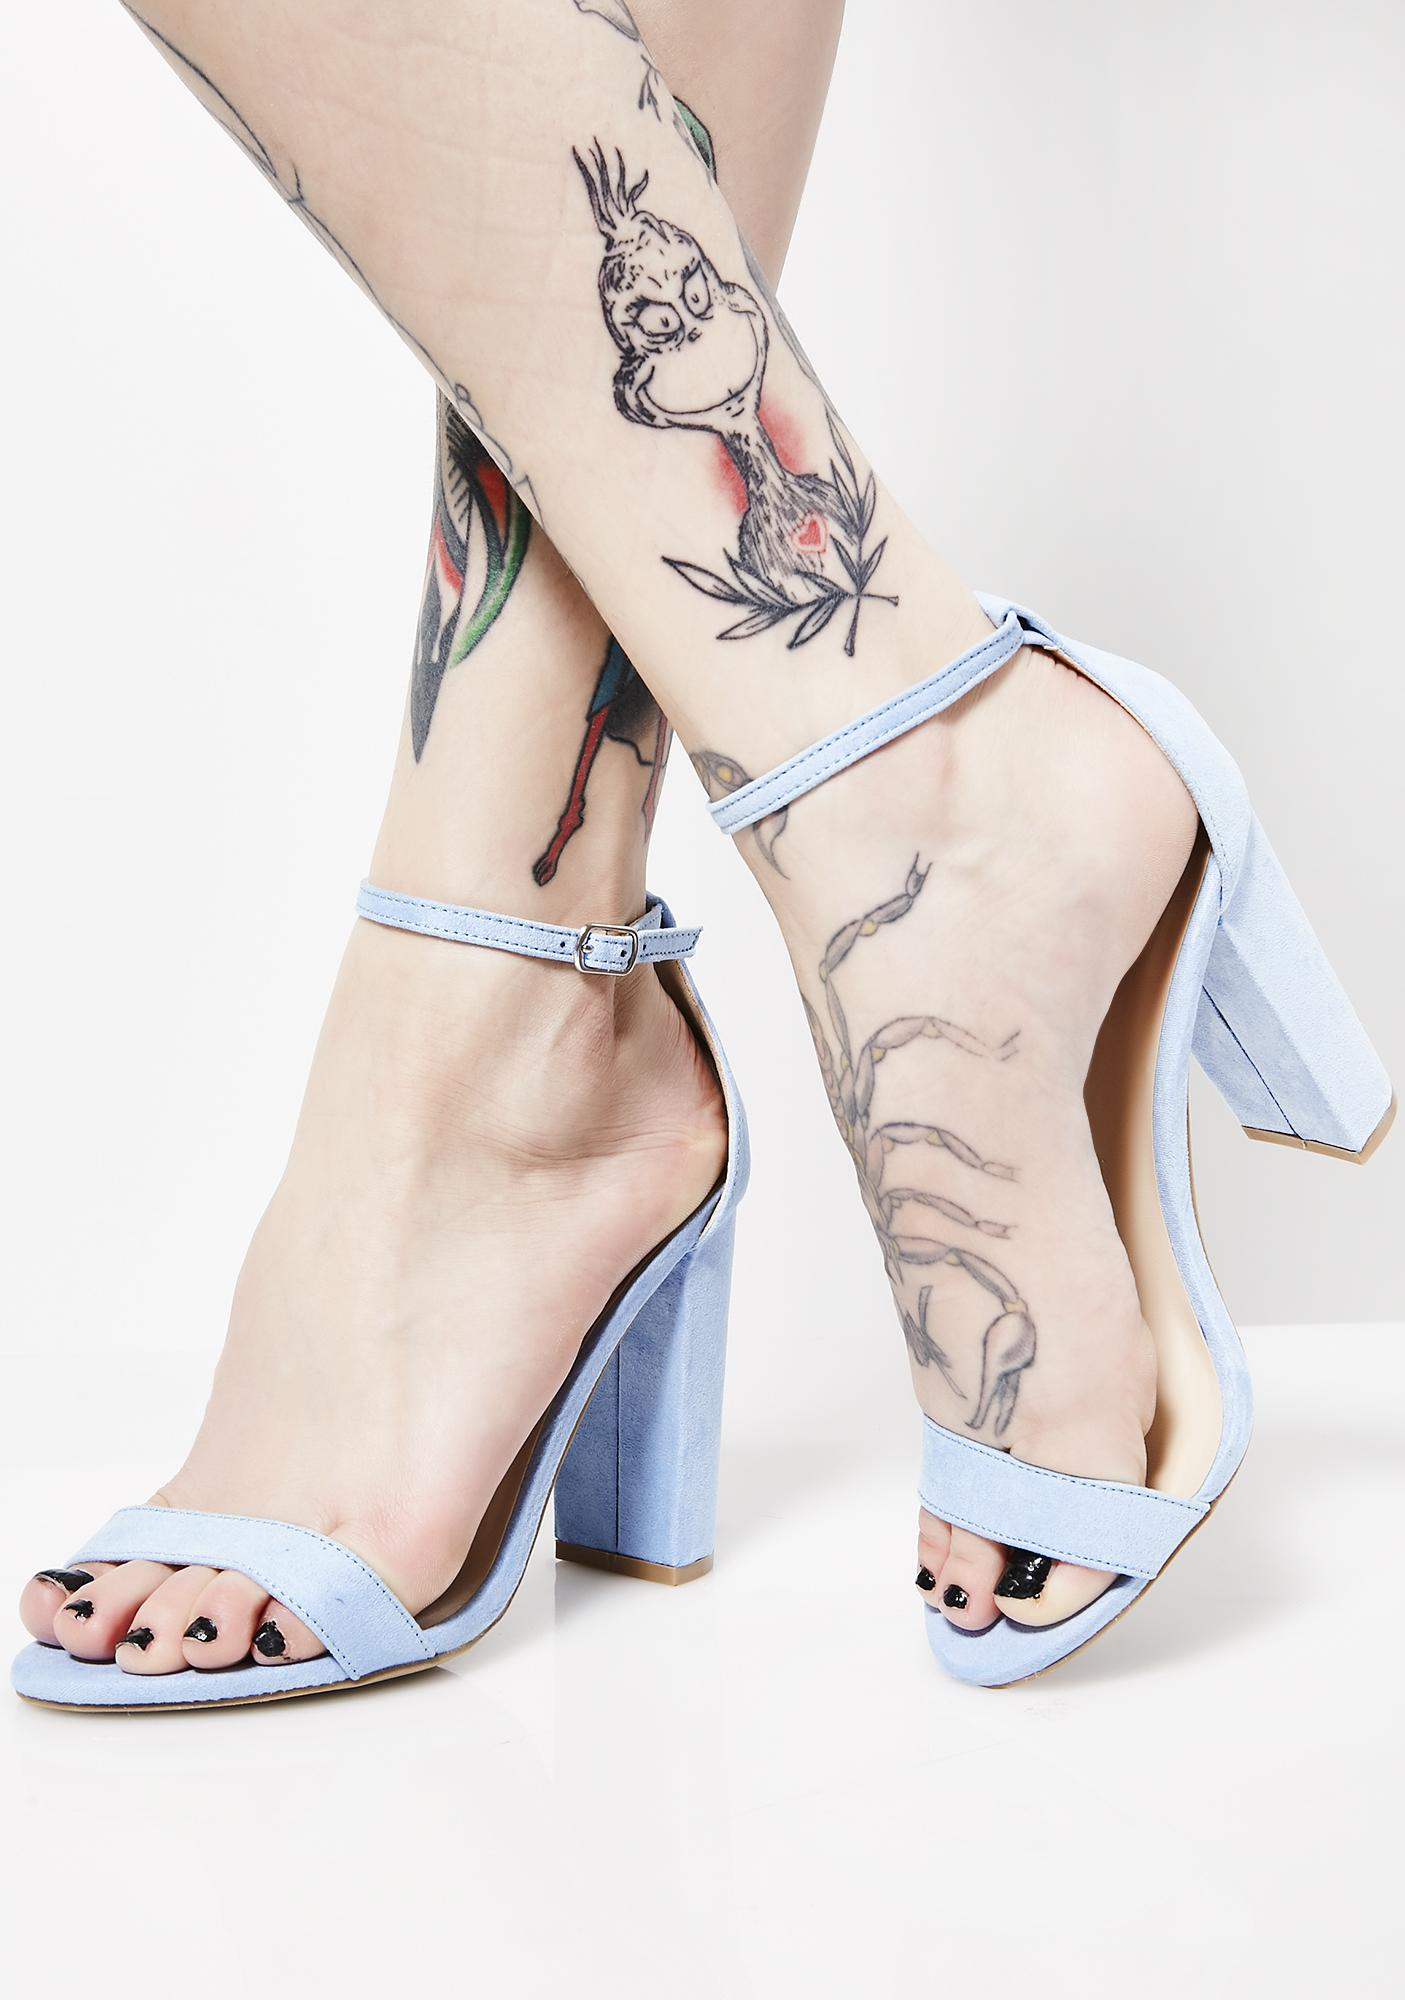 Boo'd Up Ankle Strap Heels